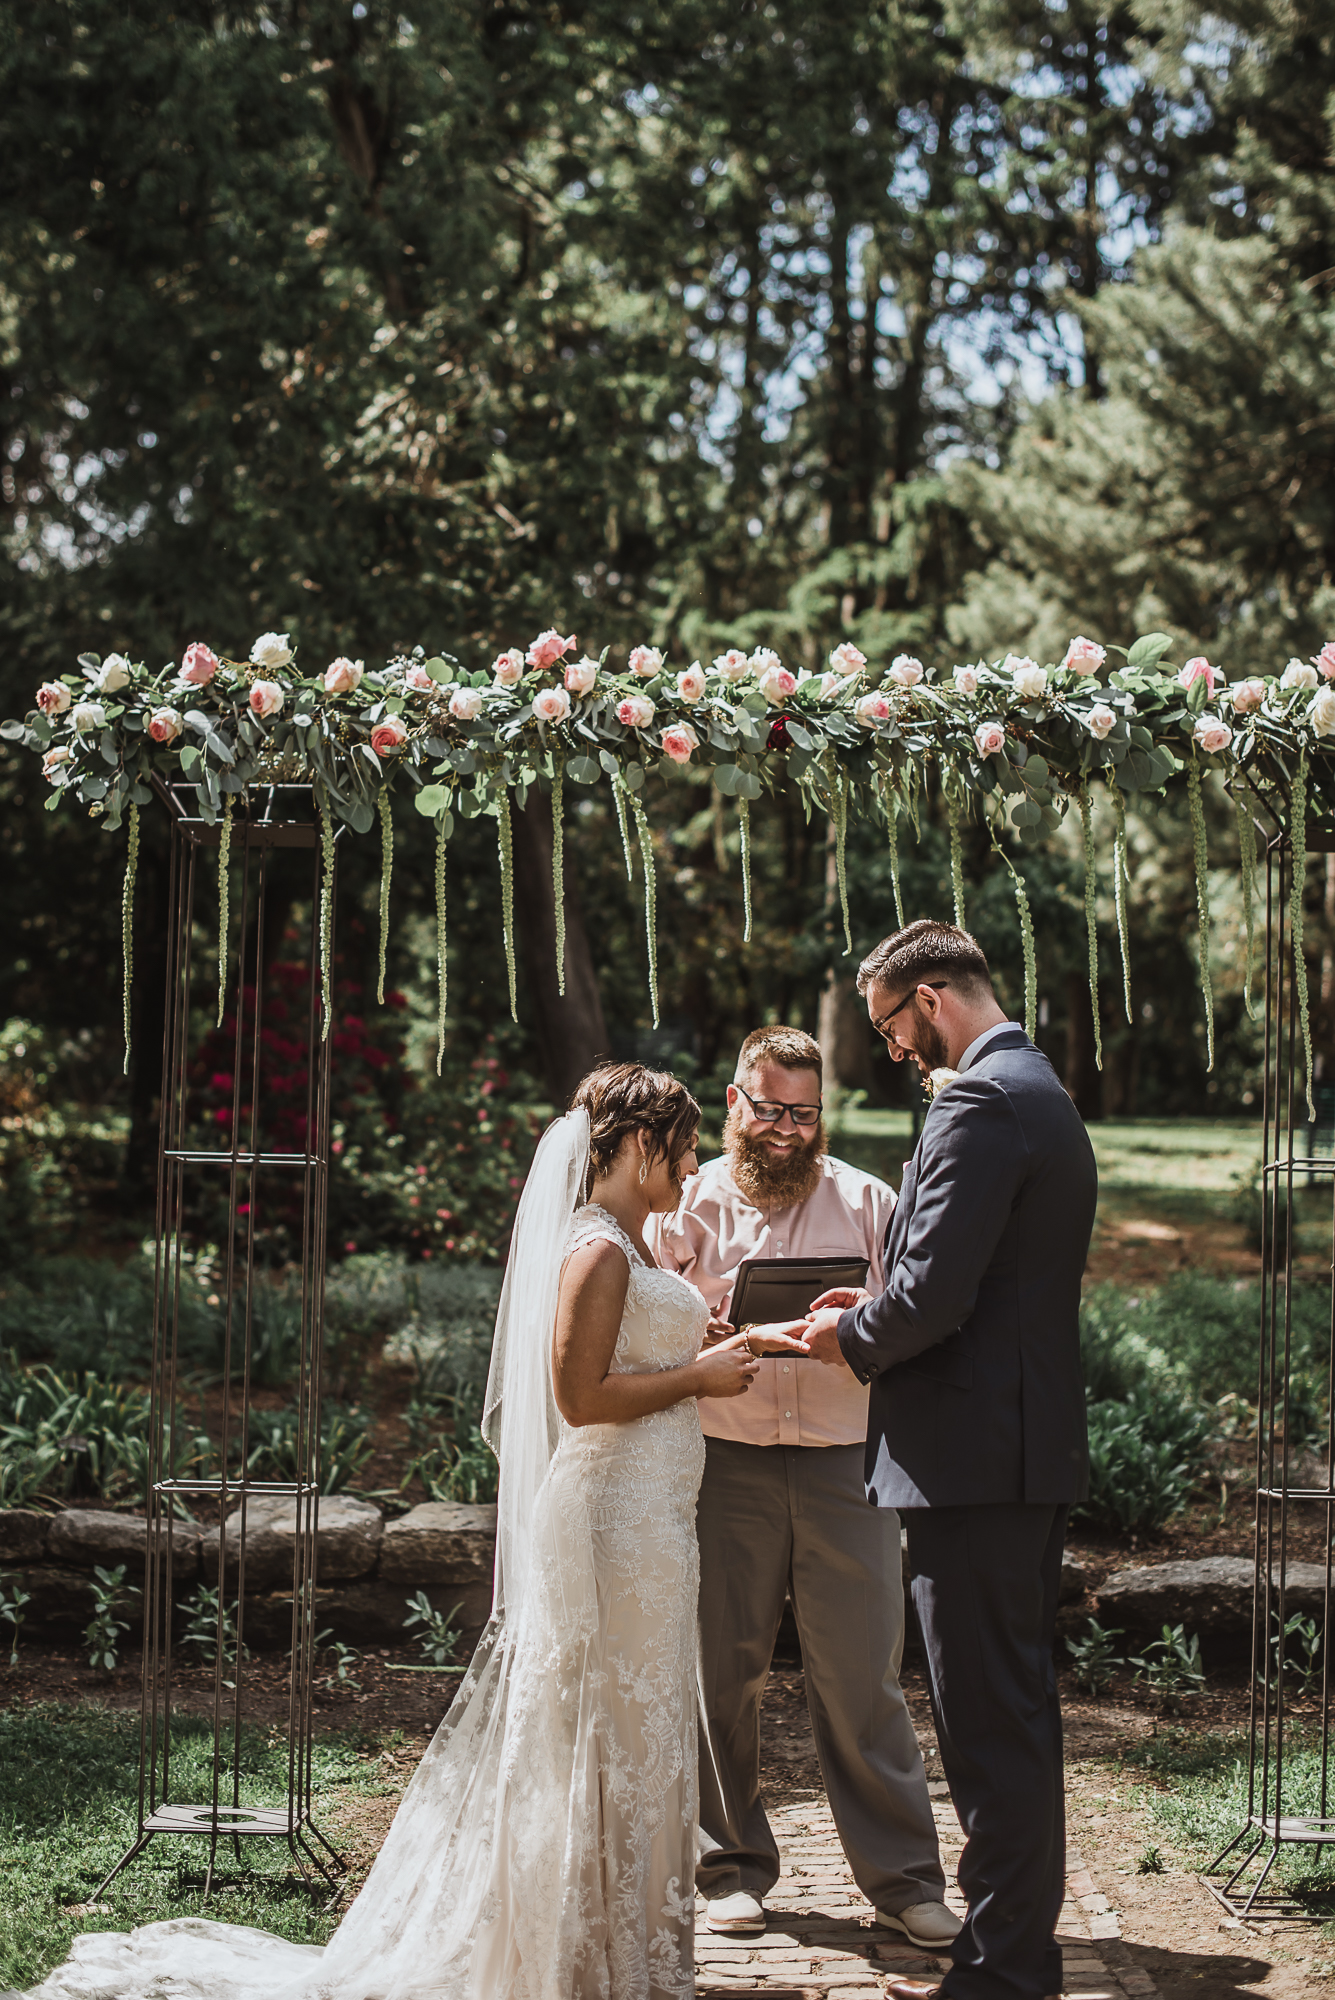 Melissa Cervantes Photography _ Kelsey + Ben Junebug Weddings Submission-59.jpg